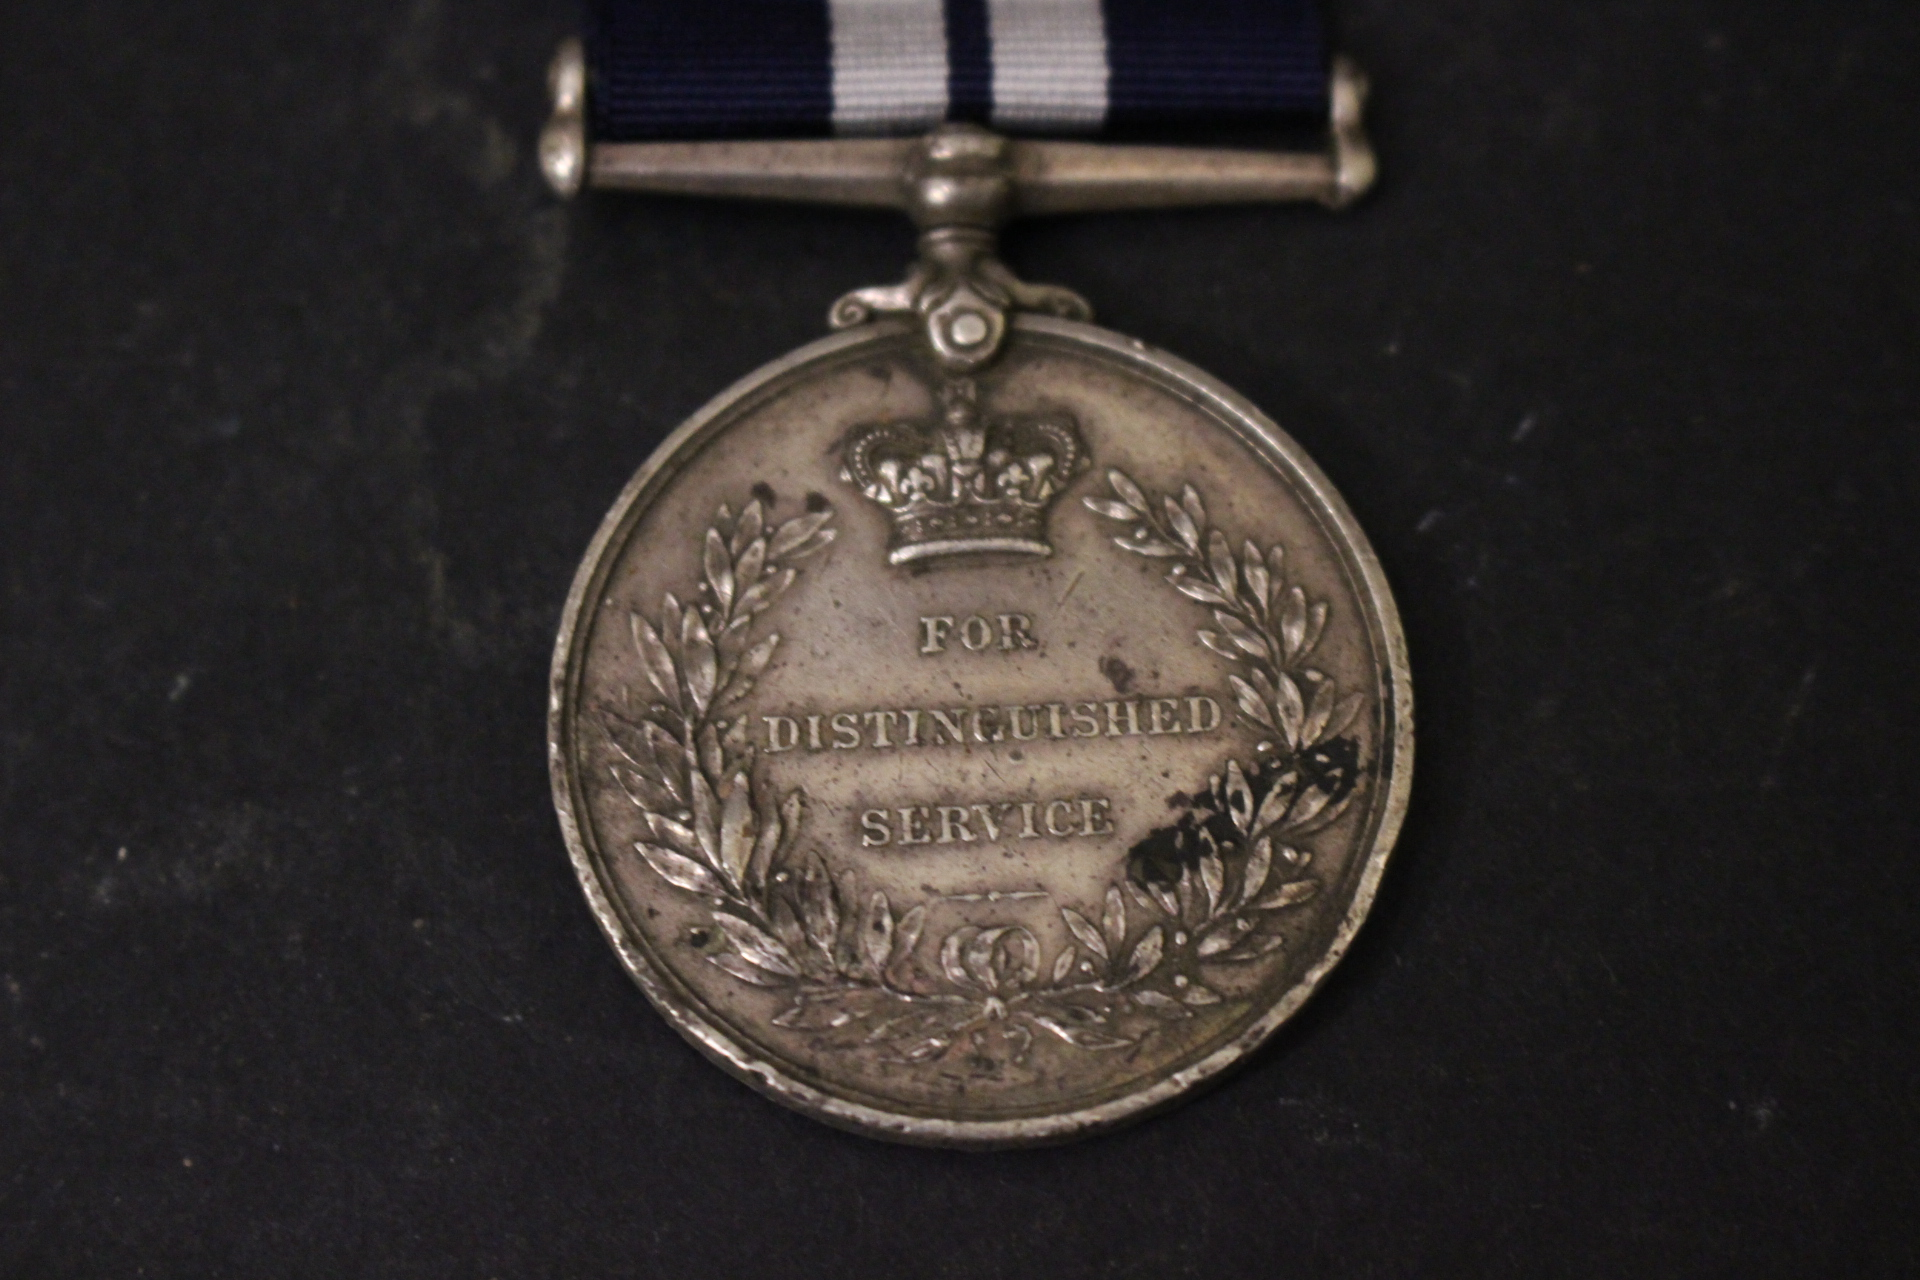 Lot 4 - A MEDAL FOR DISTINGUISHED SERVICE IN WORLD WAR I, awarded in May of 1916